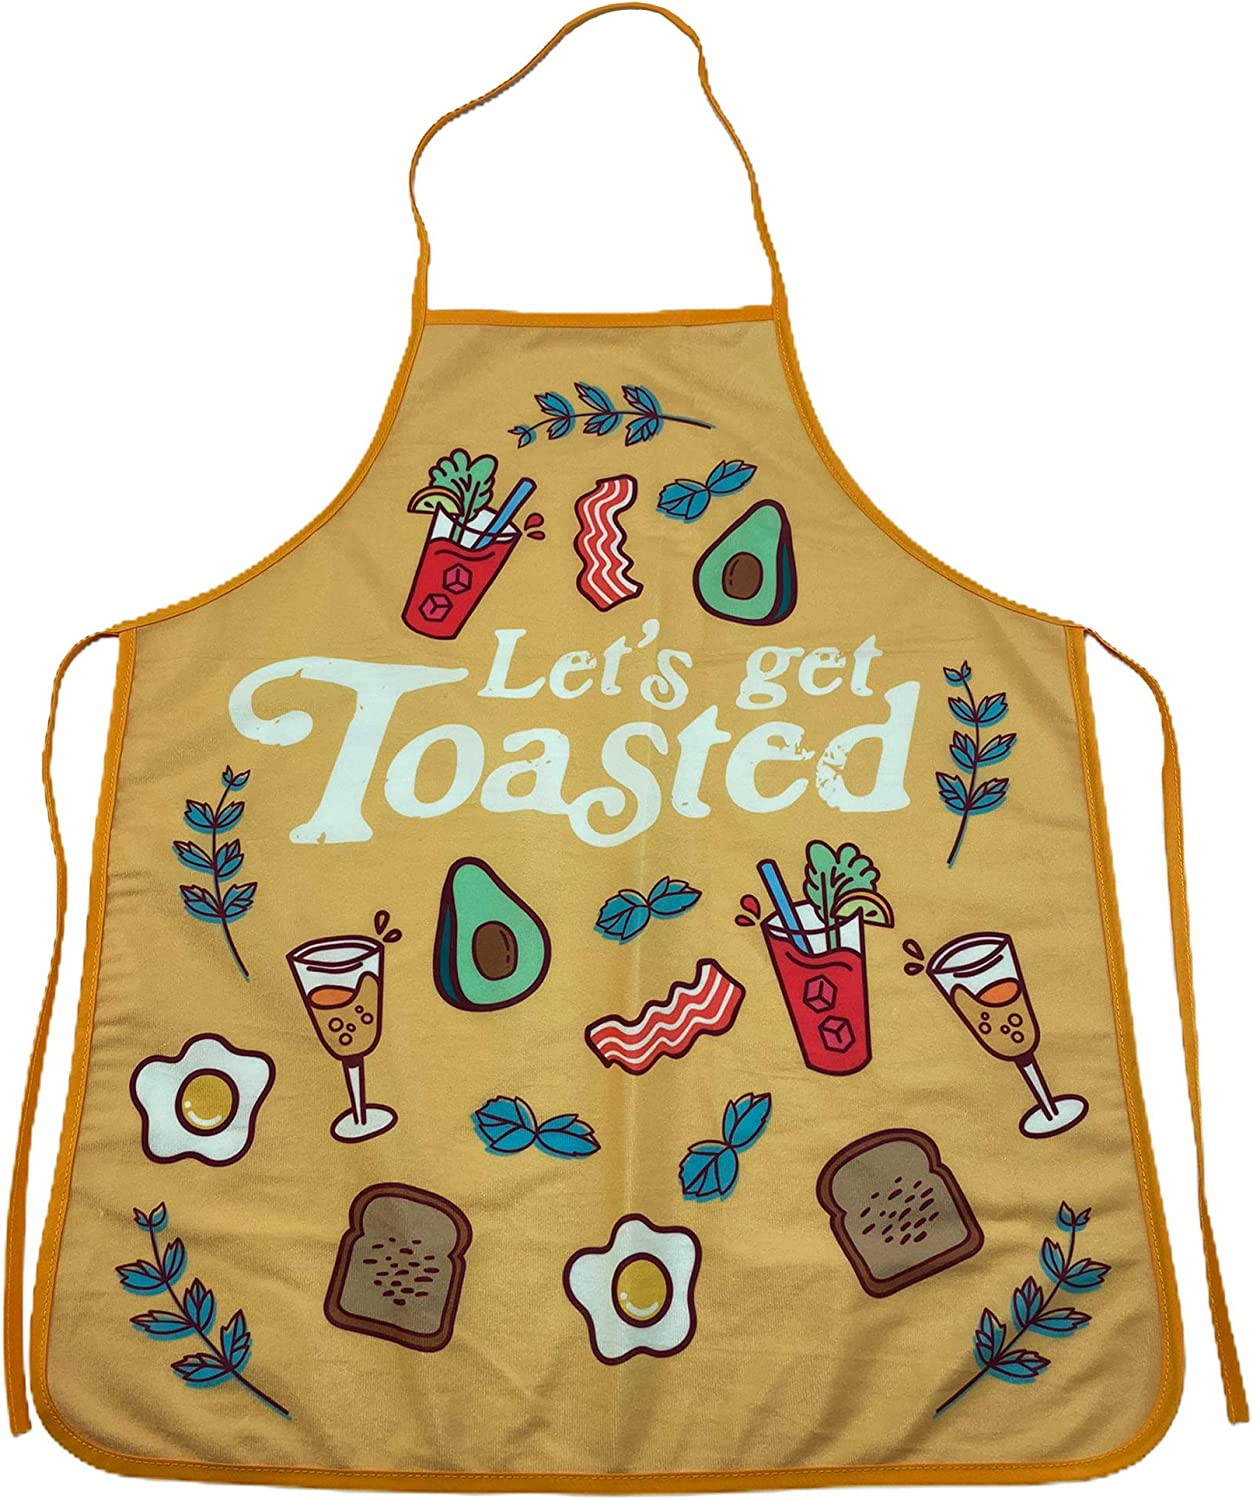 Crazy Dog T-Shirts Let's Get Toasted Apron Funny Comfort Food Breakfast Bruch Graphic Novelty Kitchen Apron (Apron)